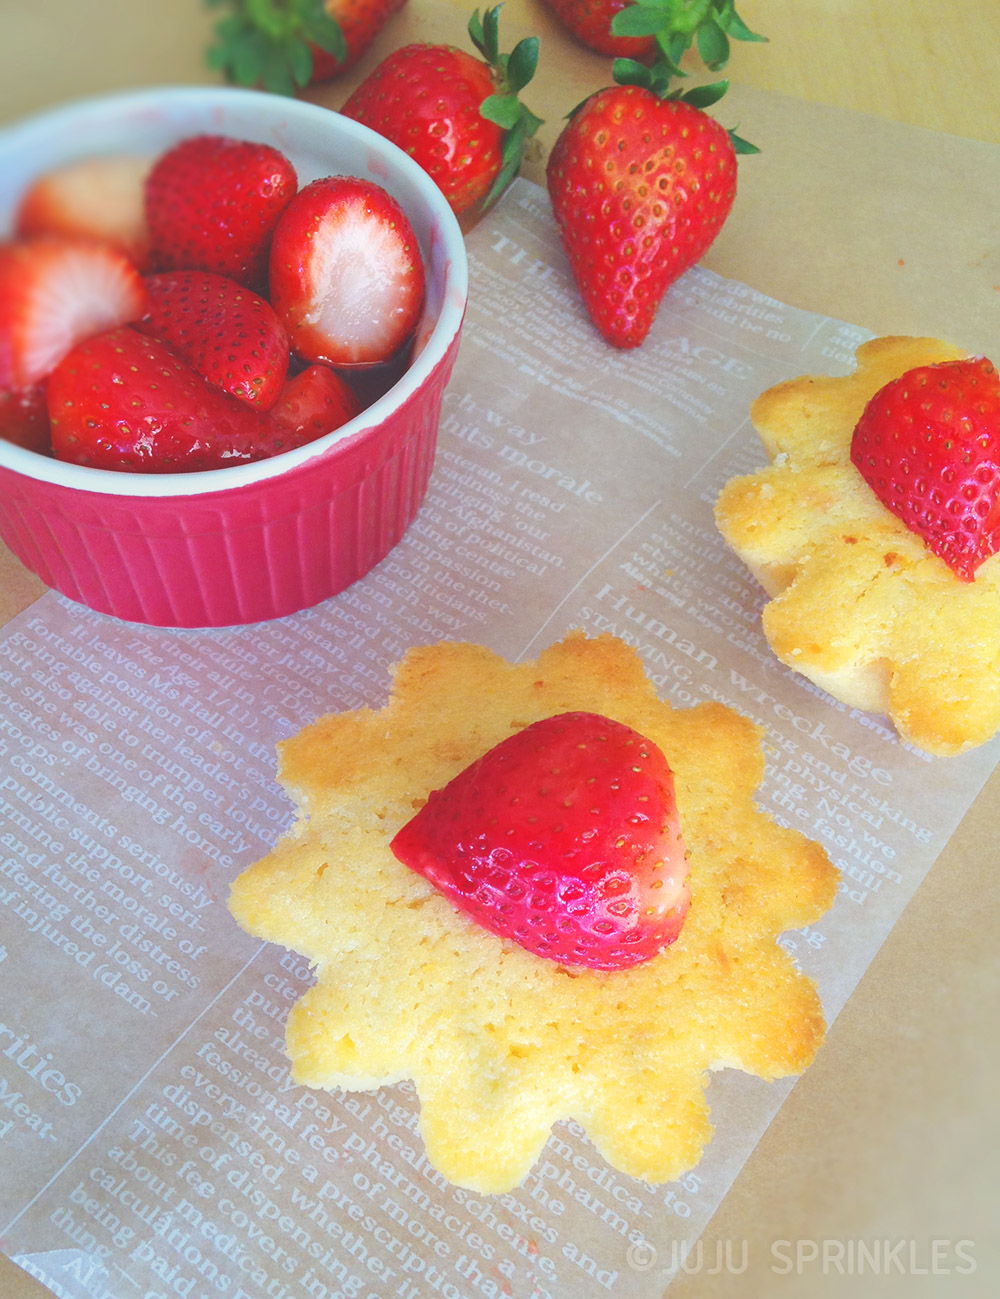 Lemon Cake with Strawberries Cover 6651